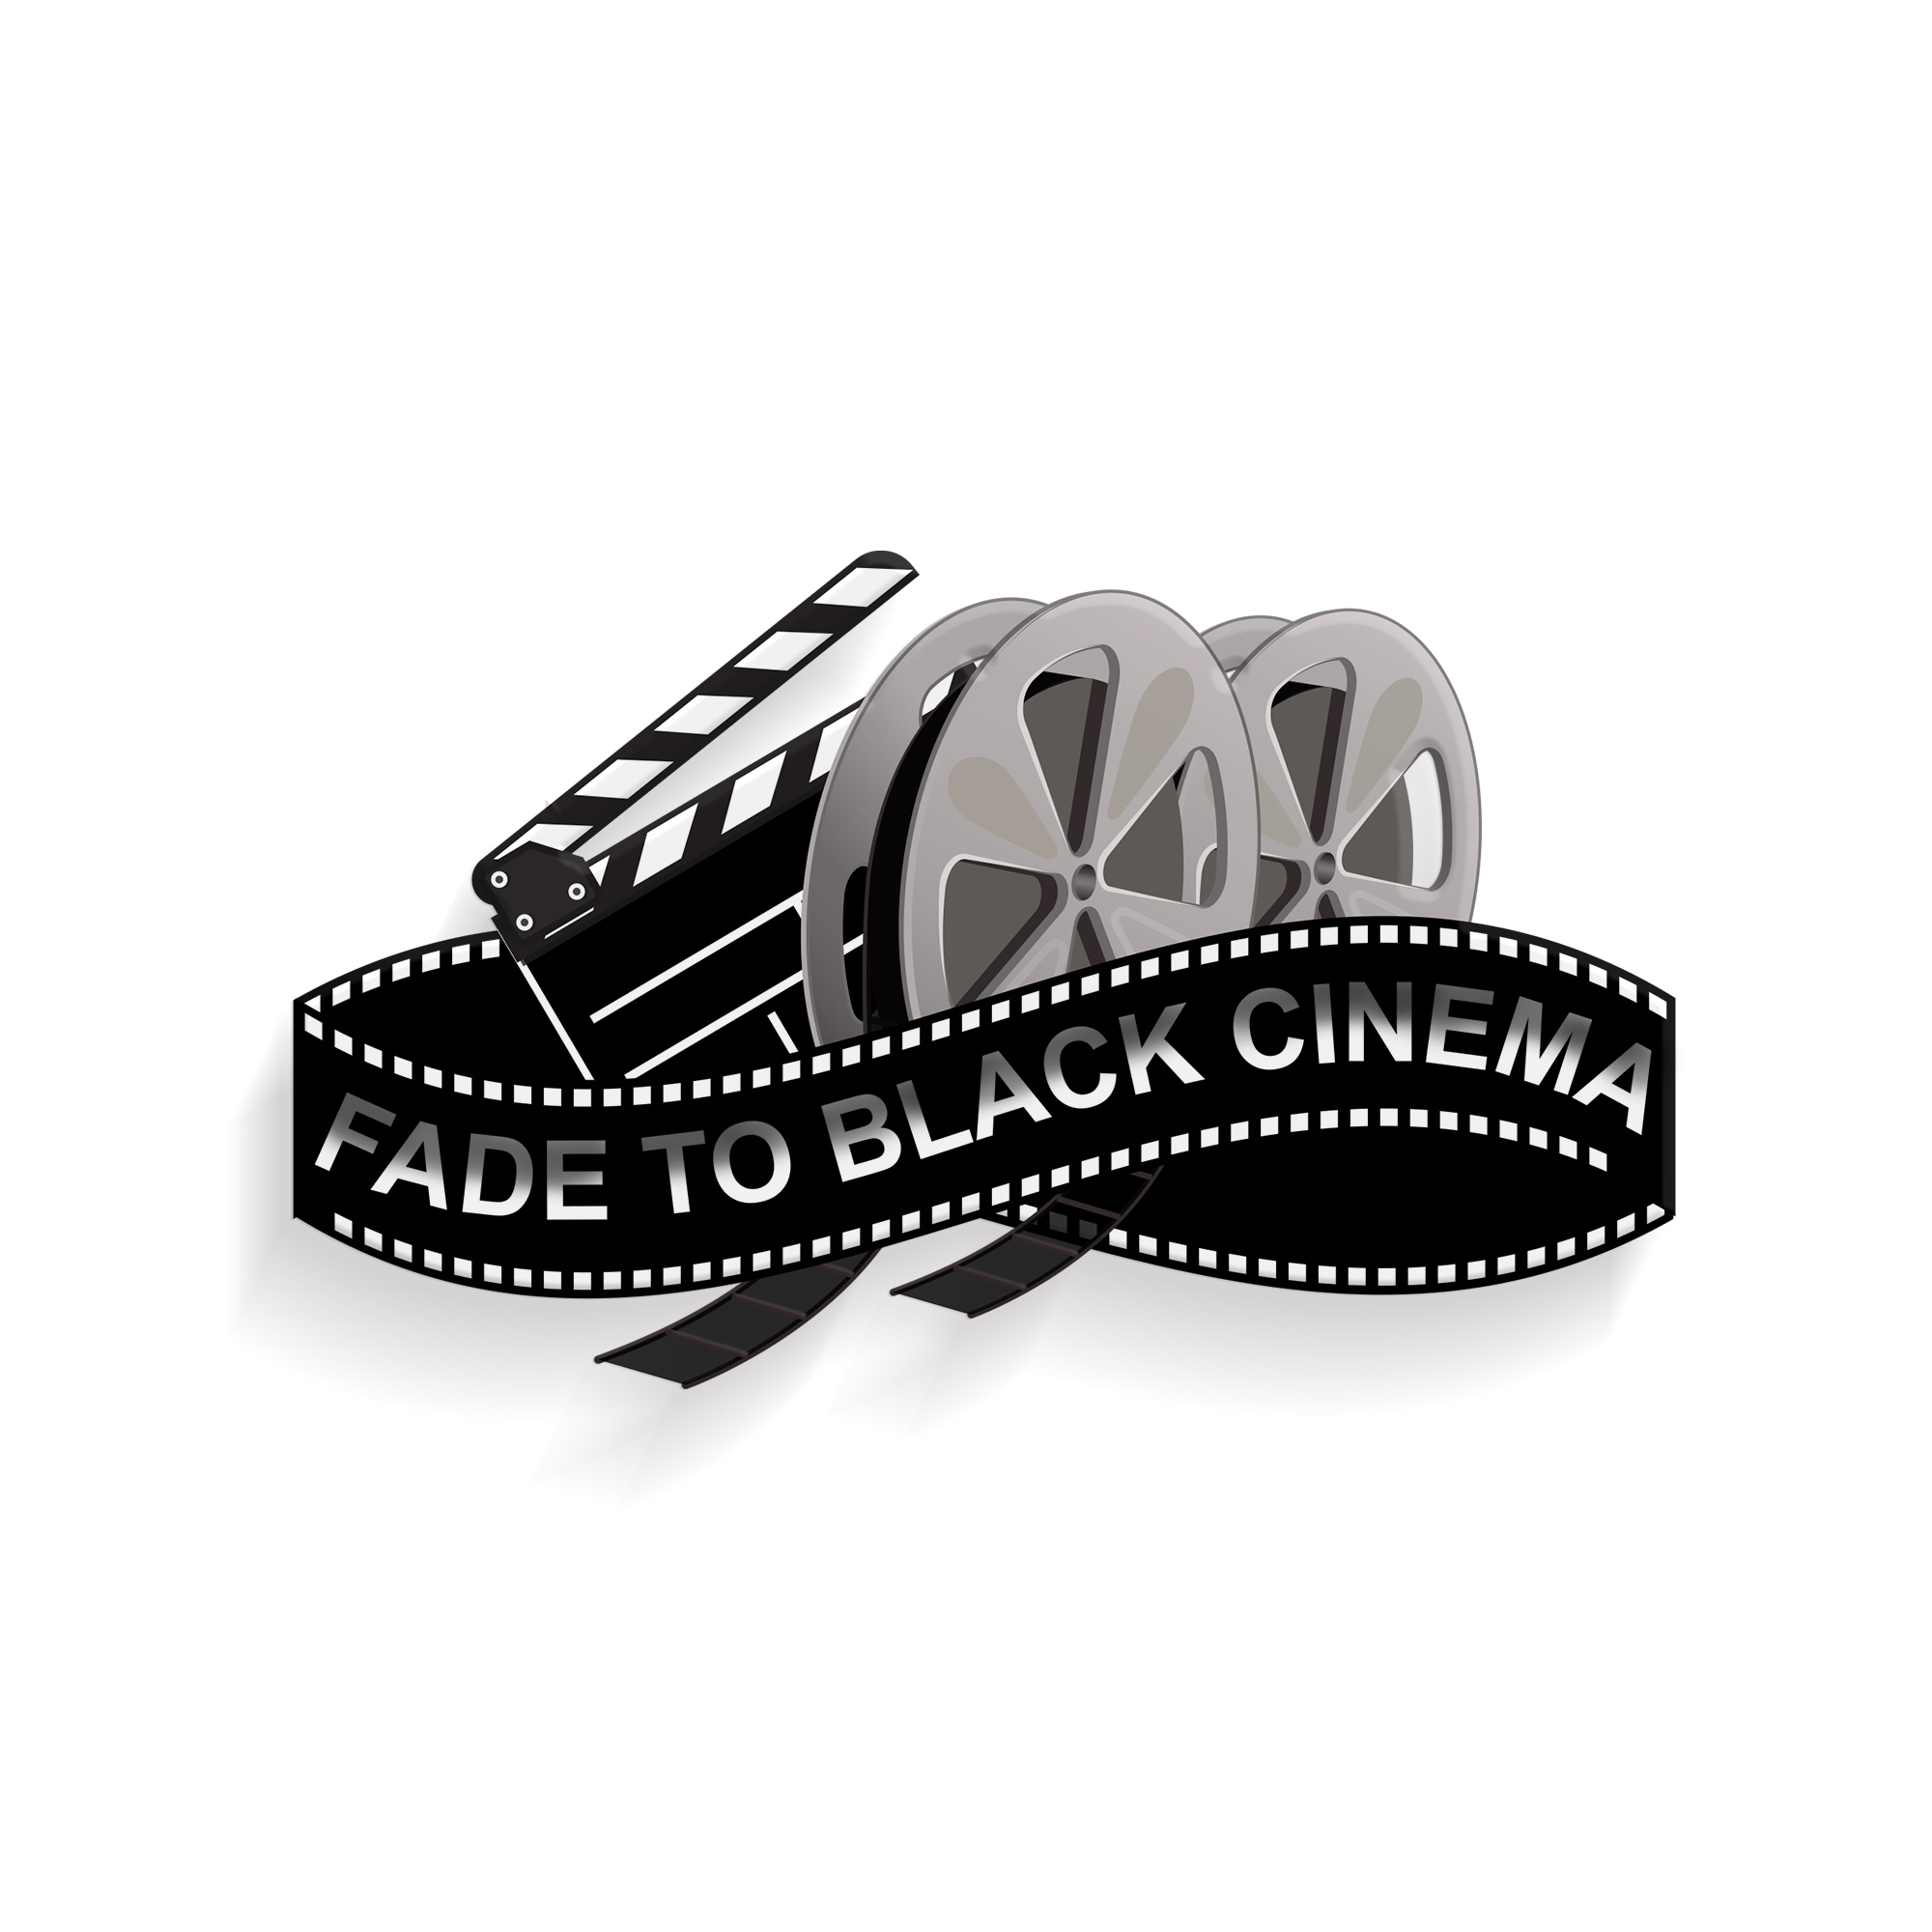 Movies, Shows and so much more!! - < click here